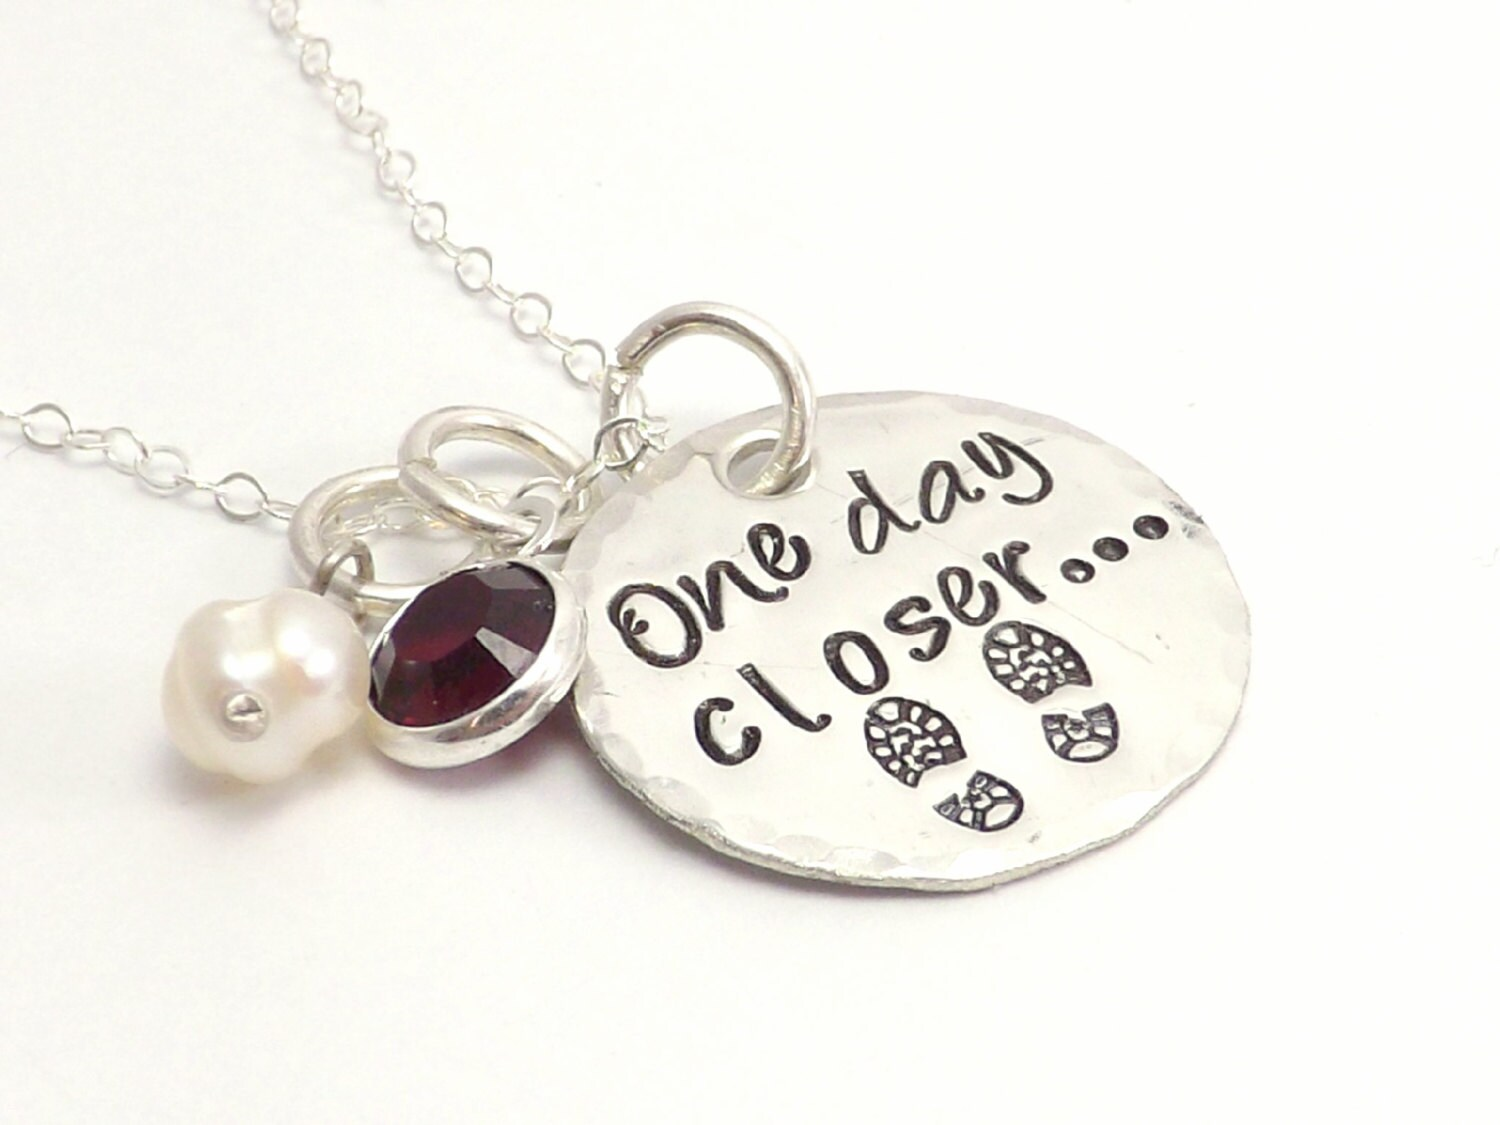 One Day Closer.. Hand Stamped Sterling Silver Necklace, Military Wife, Army Wife, Deployment Jewelry - MissAshleyJewelry